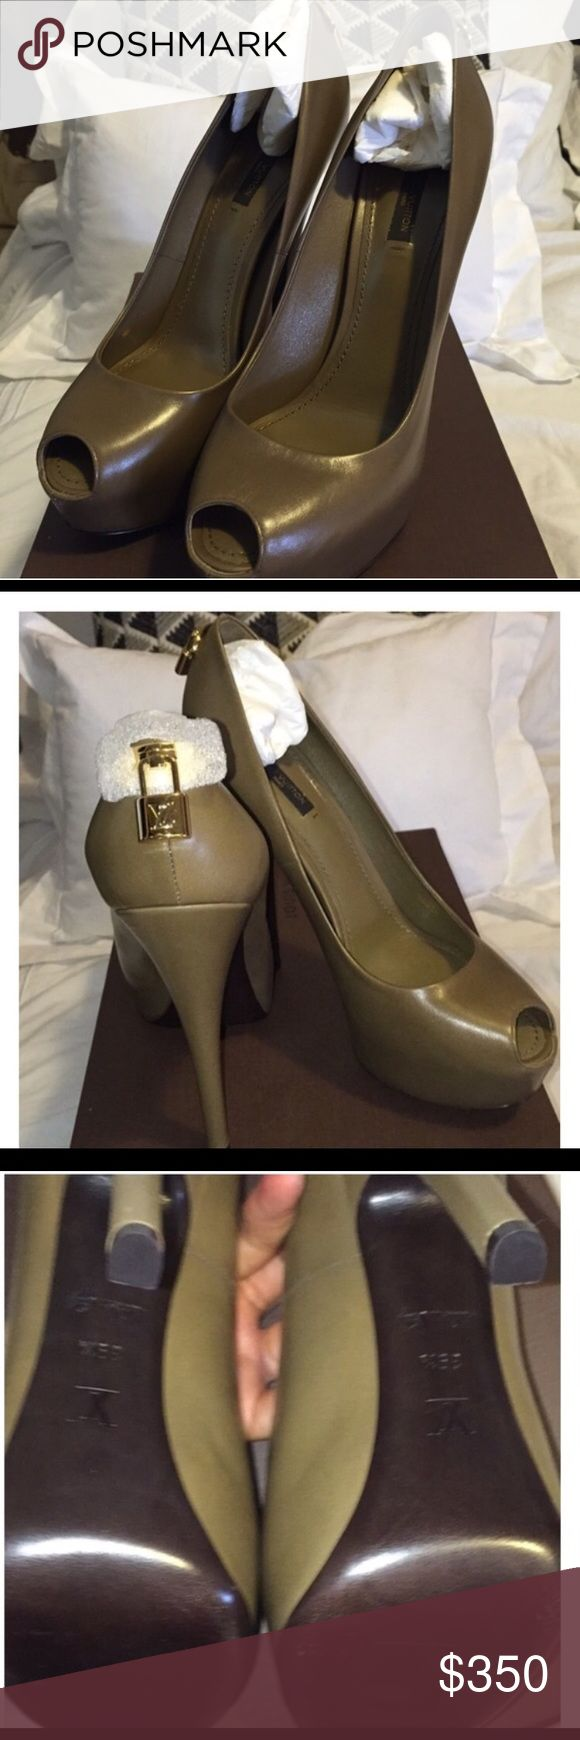 Authentic Louis Vuitton Oh Really Pump-Olive 9.5 Sexy never worn except to try on. Unfortunately I purchased from another posher and my foot does not fit but the shoe is gorgeous! Note it states 9.5 and I am a true 9.5 but will likely fit a size9 best! Don't miss out on this fall pump that is a must have! Louis Vuitton Shoes Heels